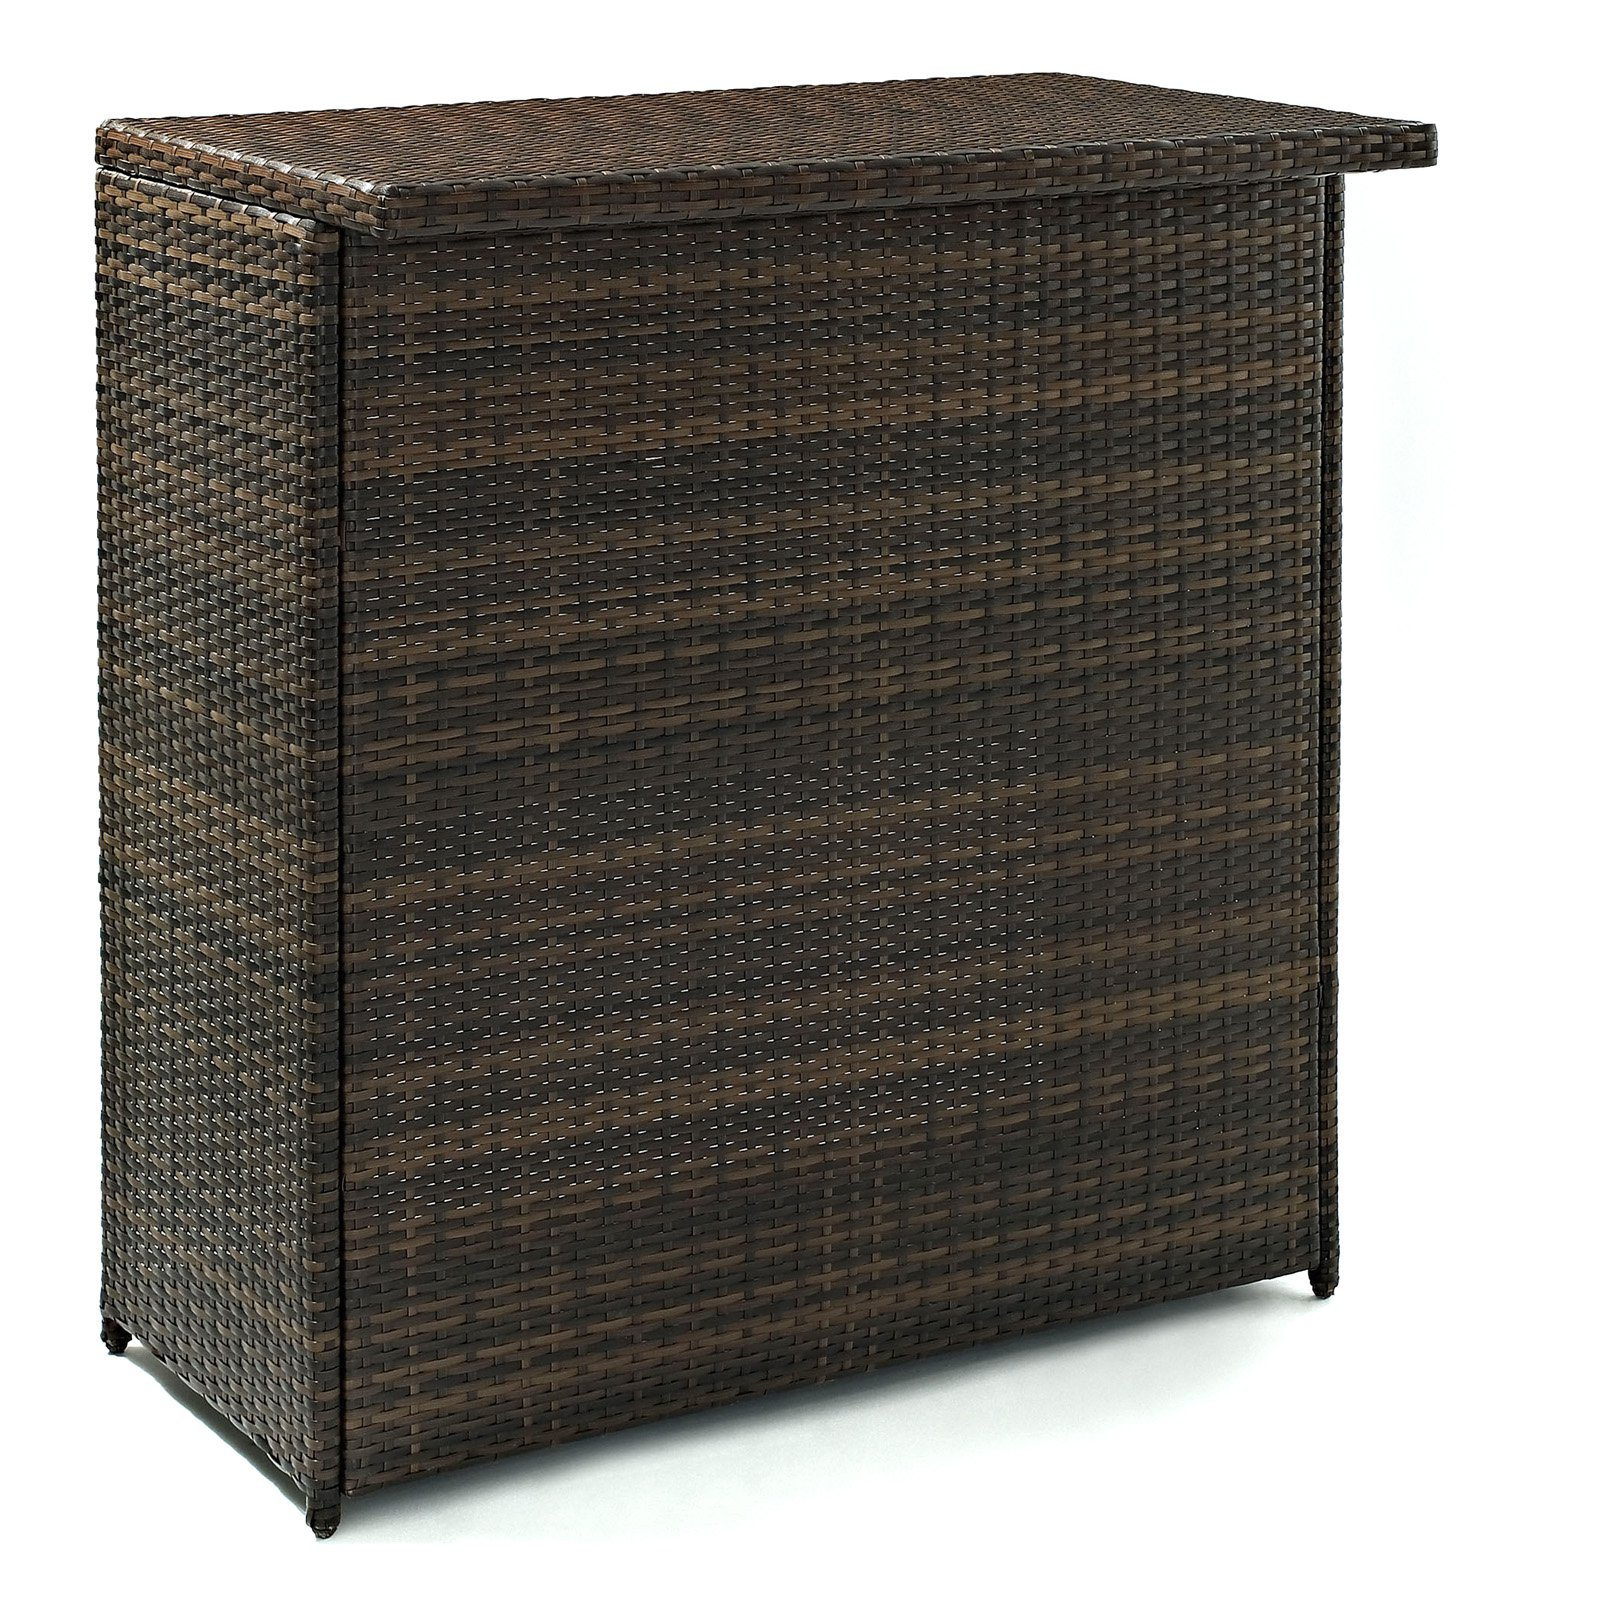 Crosley Palm Harbor Outdoor Wicker Bar by Crosley Brands, Inc